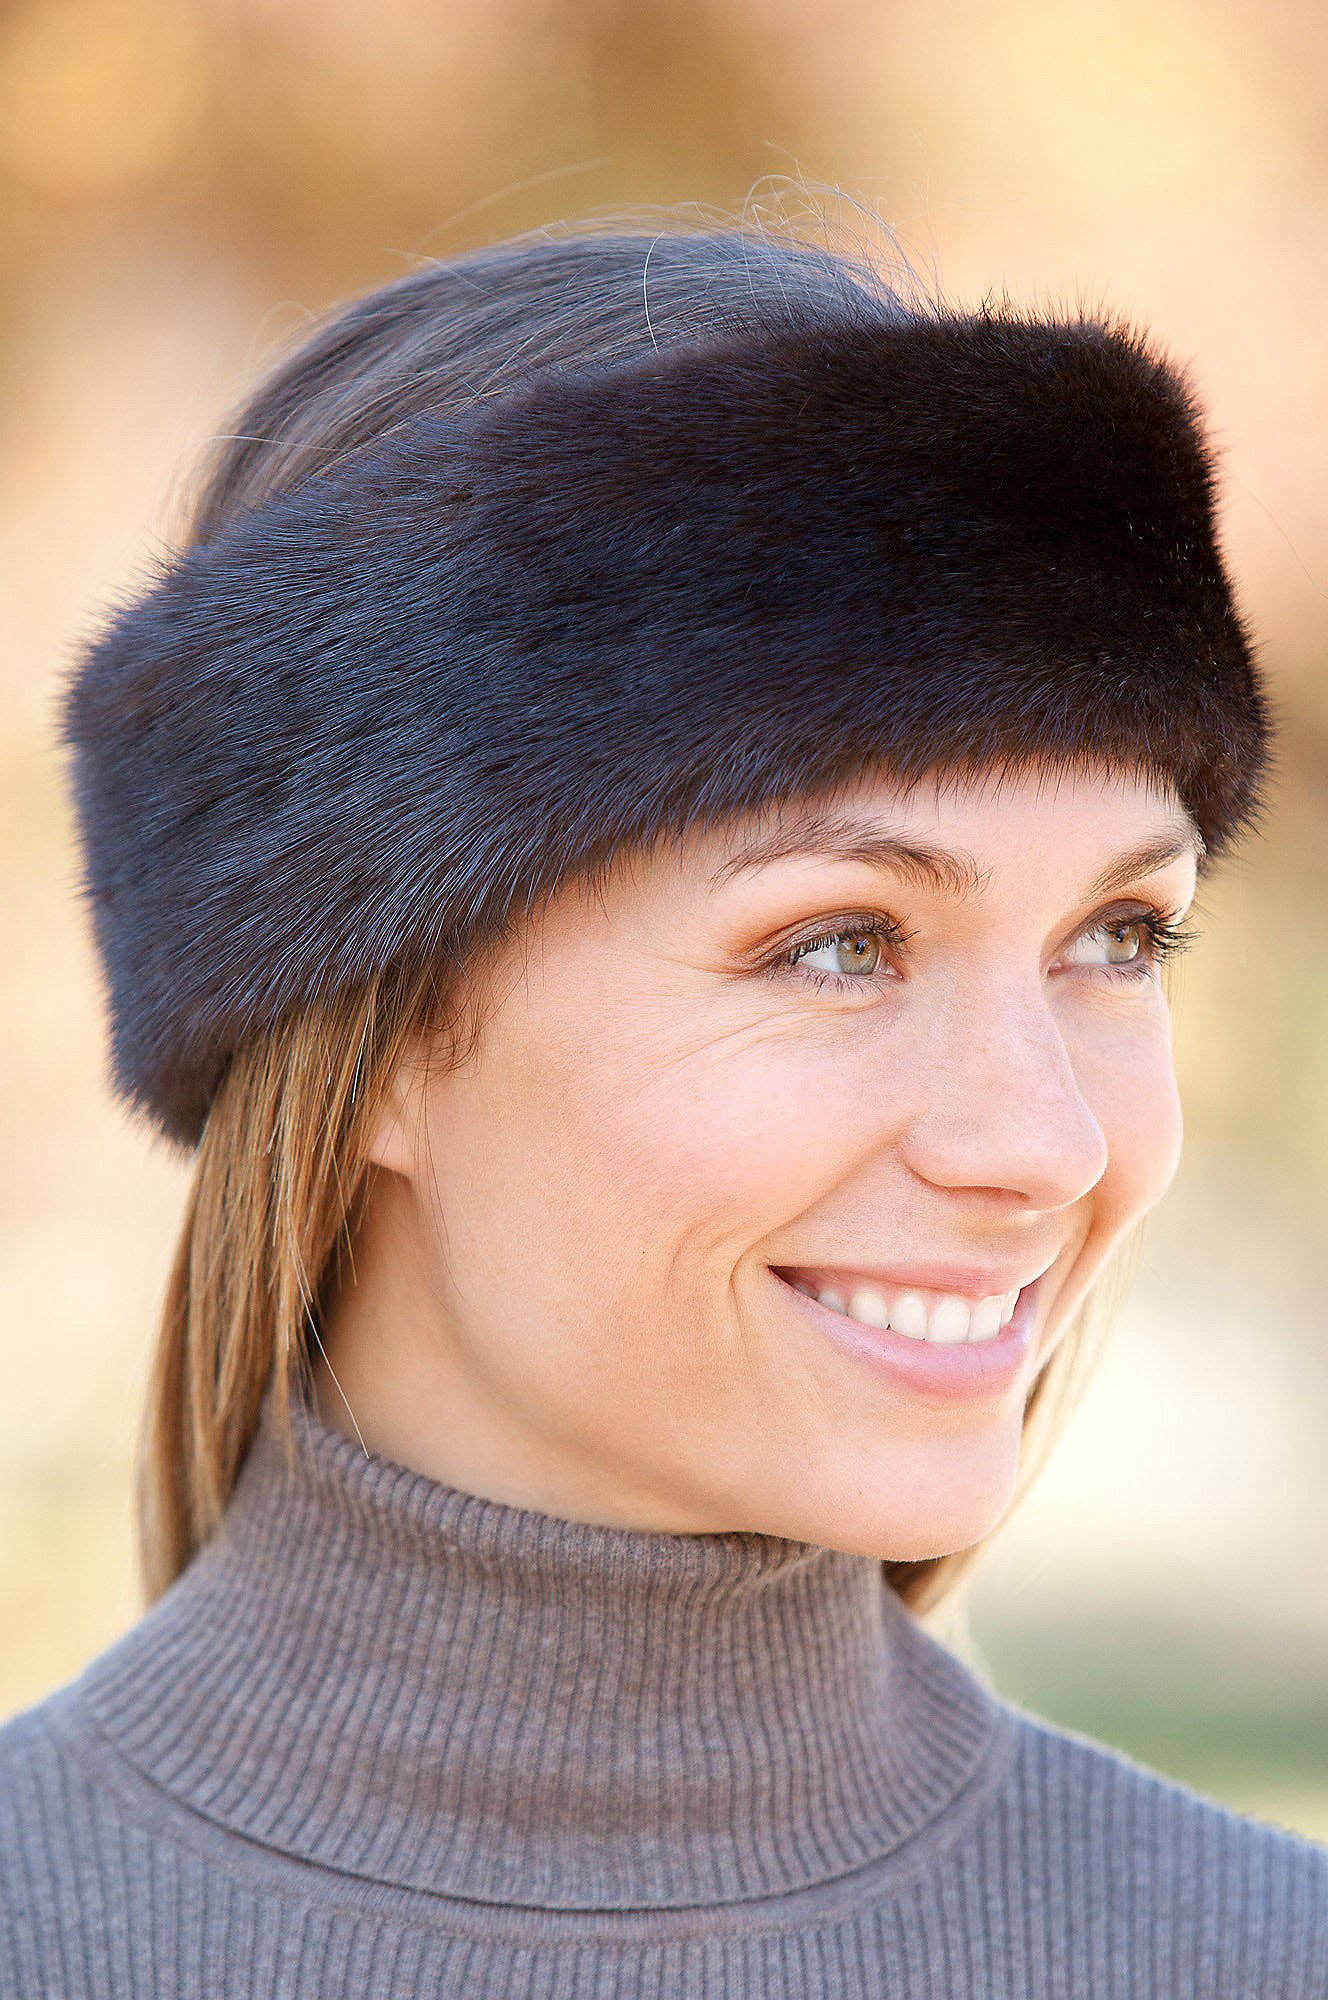 Mink Fur Headband, MAHOGANY, Size 1 Size by Overland Sheepskin Co (Image #3)